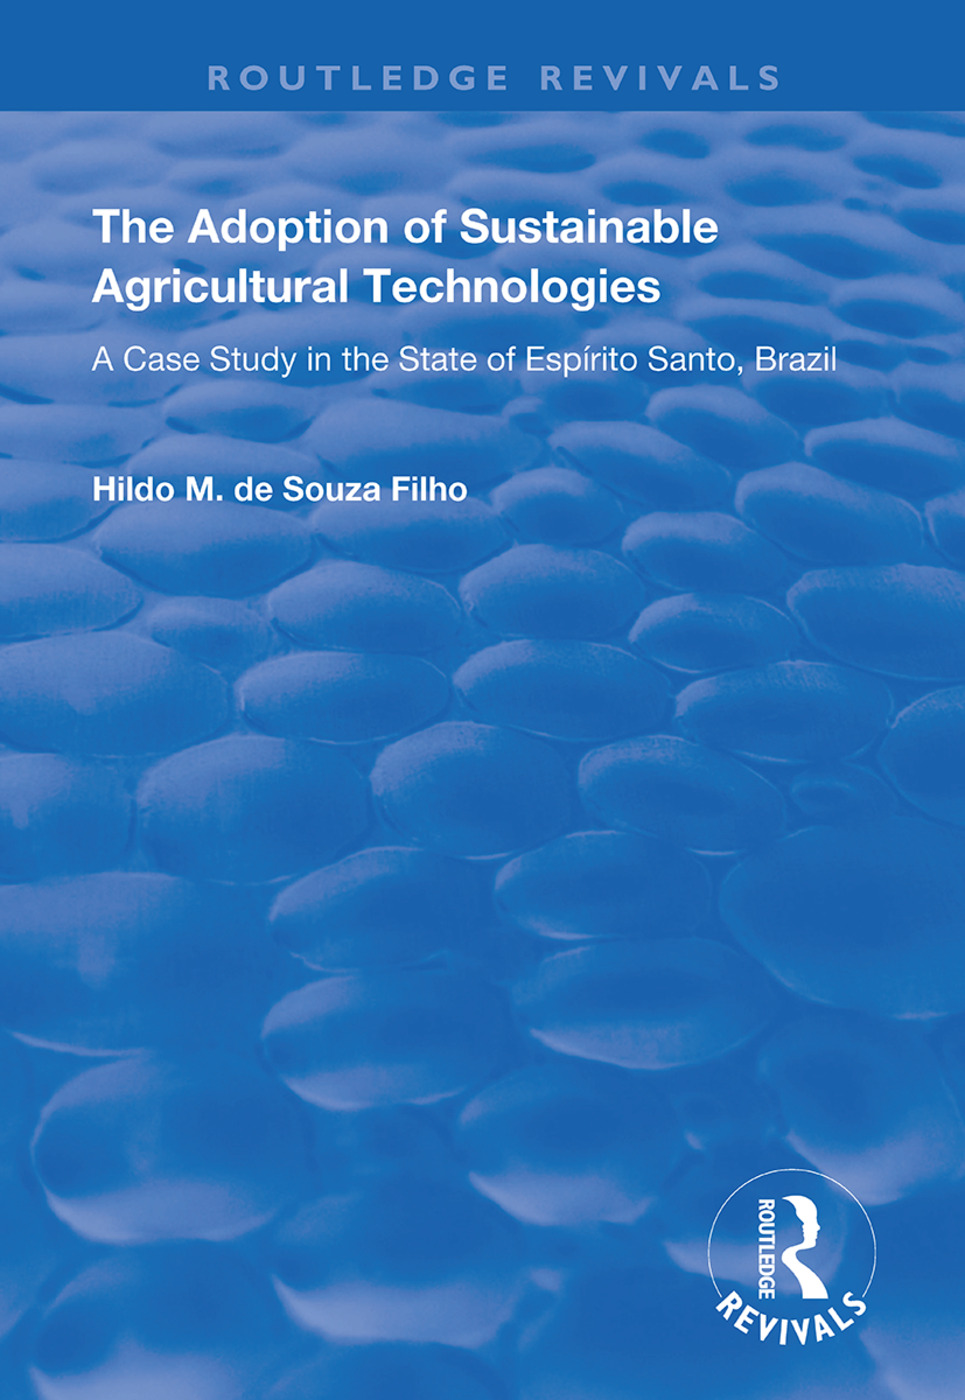 The Adoption of Sustainable Agricultural Technologies